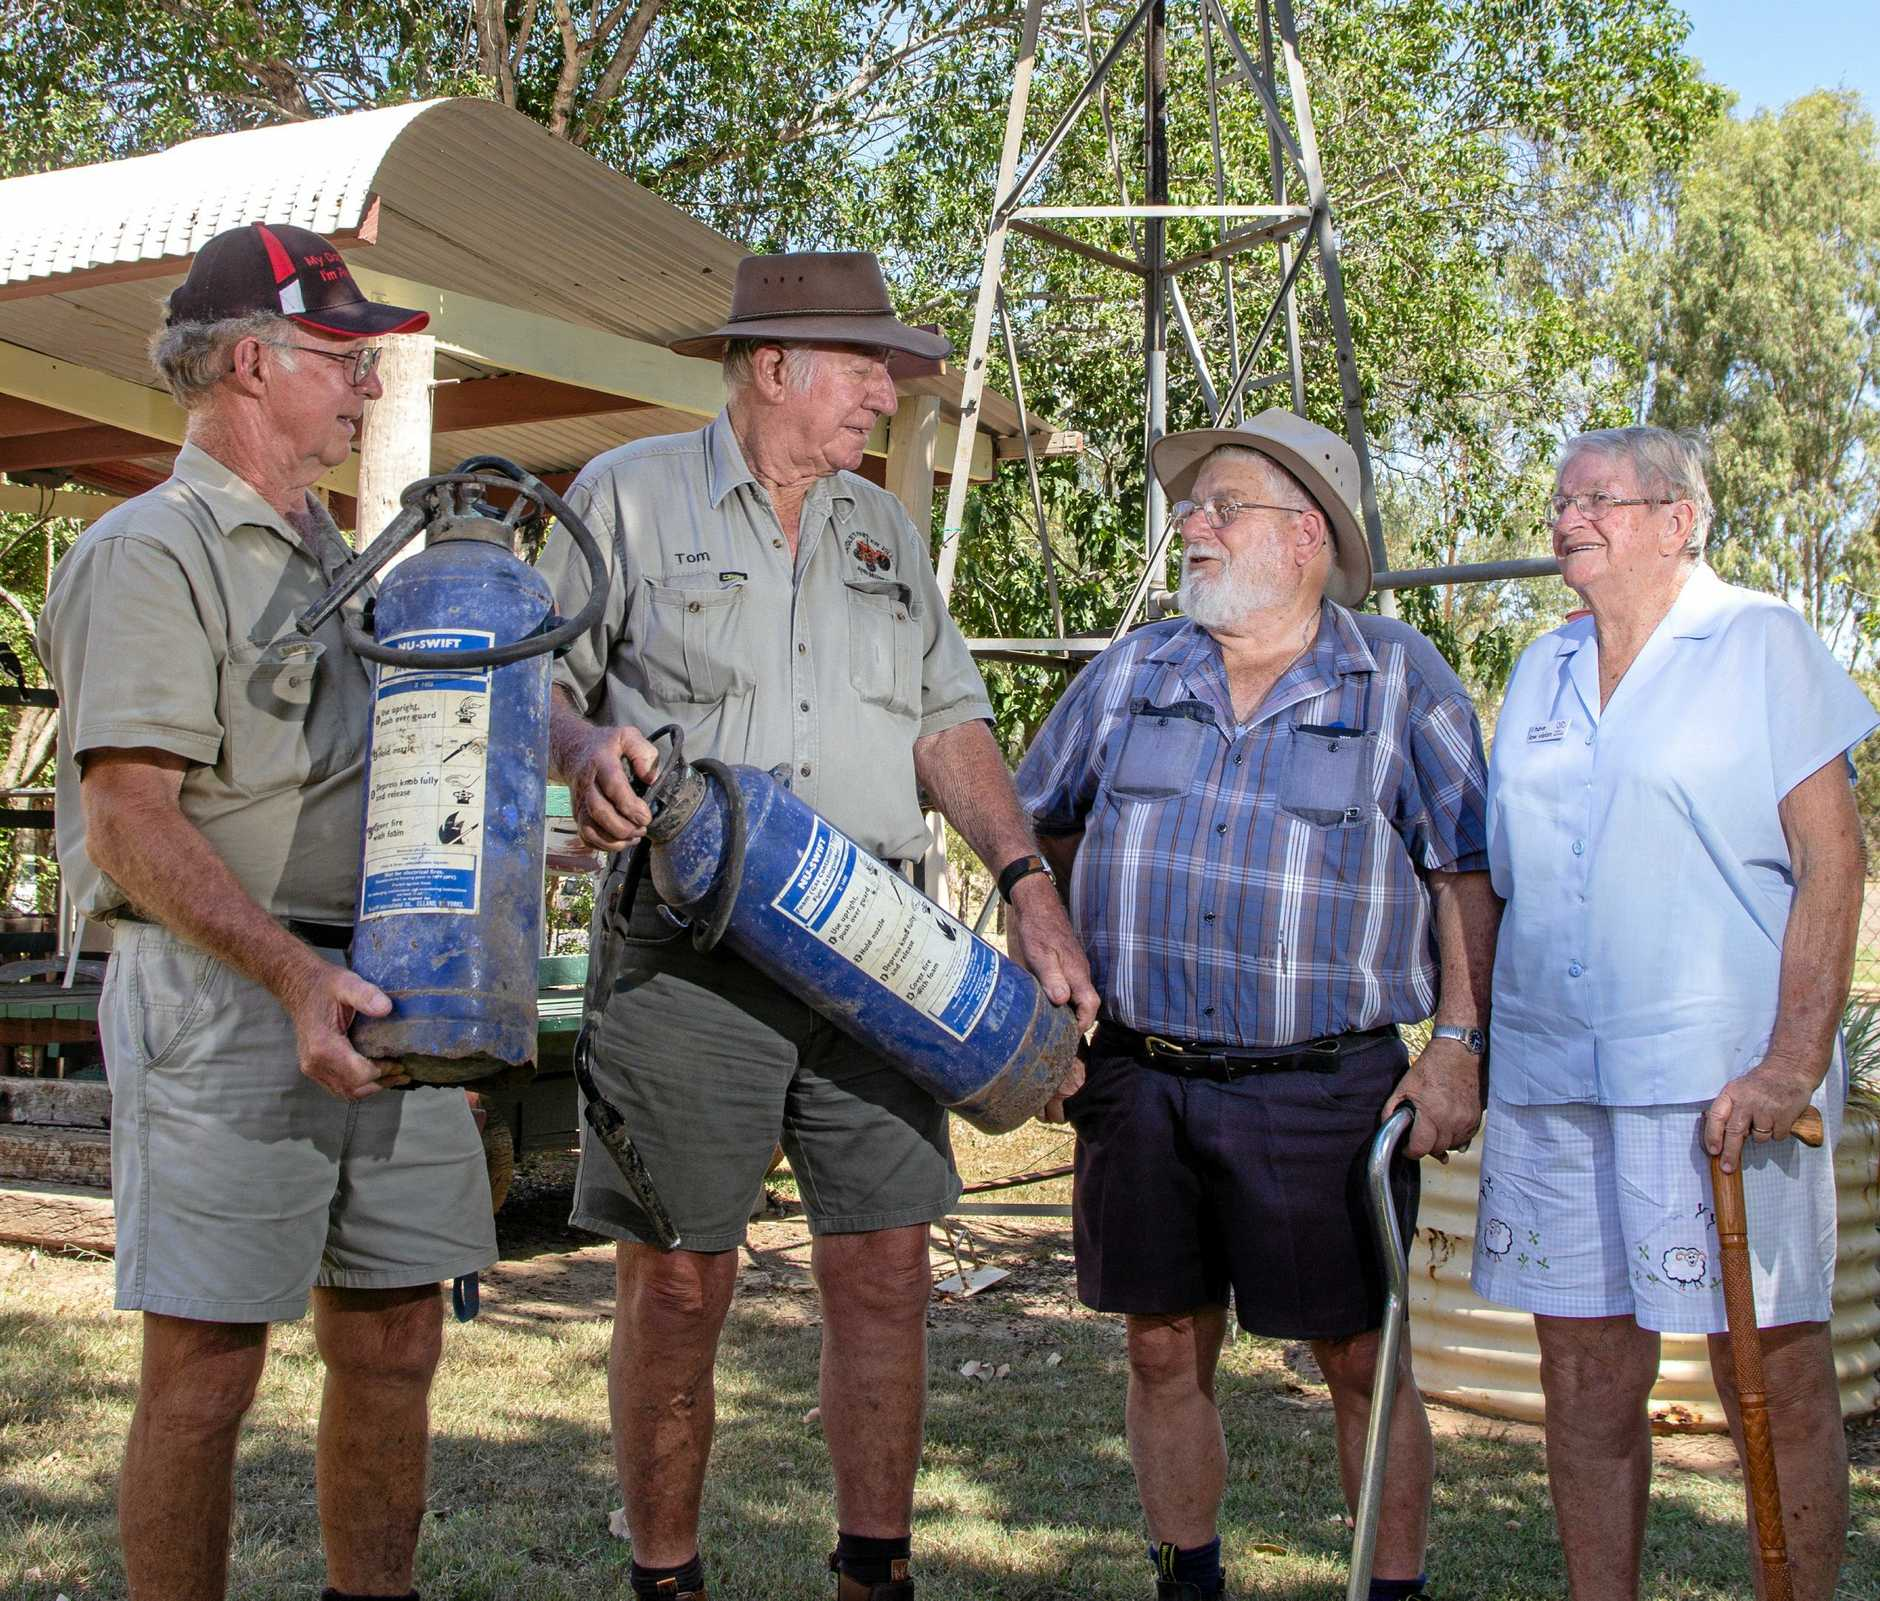 HEARTWARMING GESTURE: Laidley Pioneer Village's John Barwell and Tom Mulcahy hold the fire extinguishers Bob and Gloria Sanderson donated to the village to replace a similar extinguisher stolen last year.